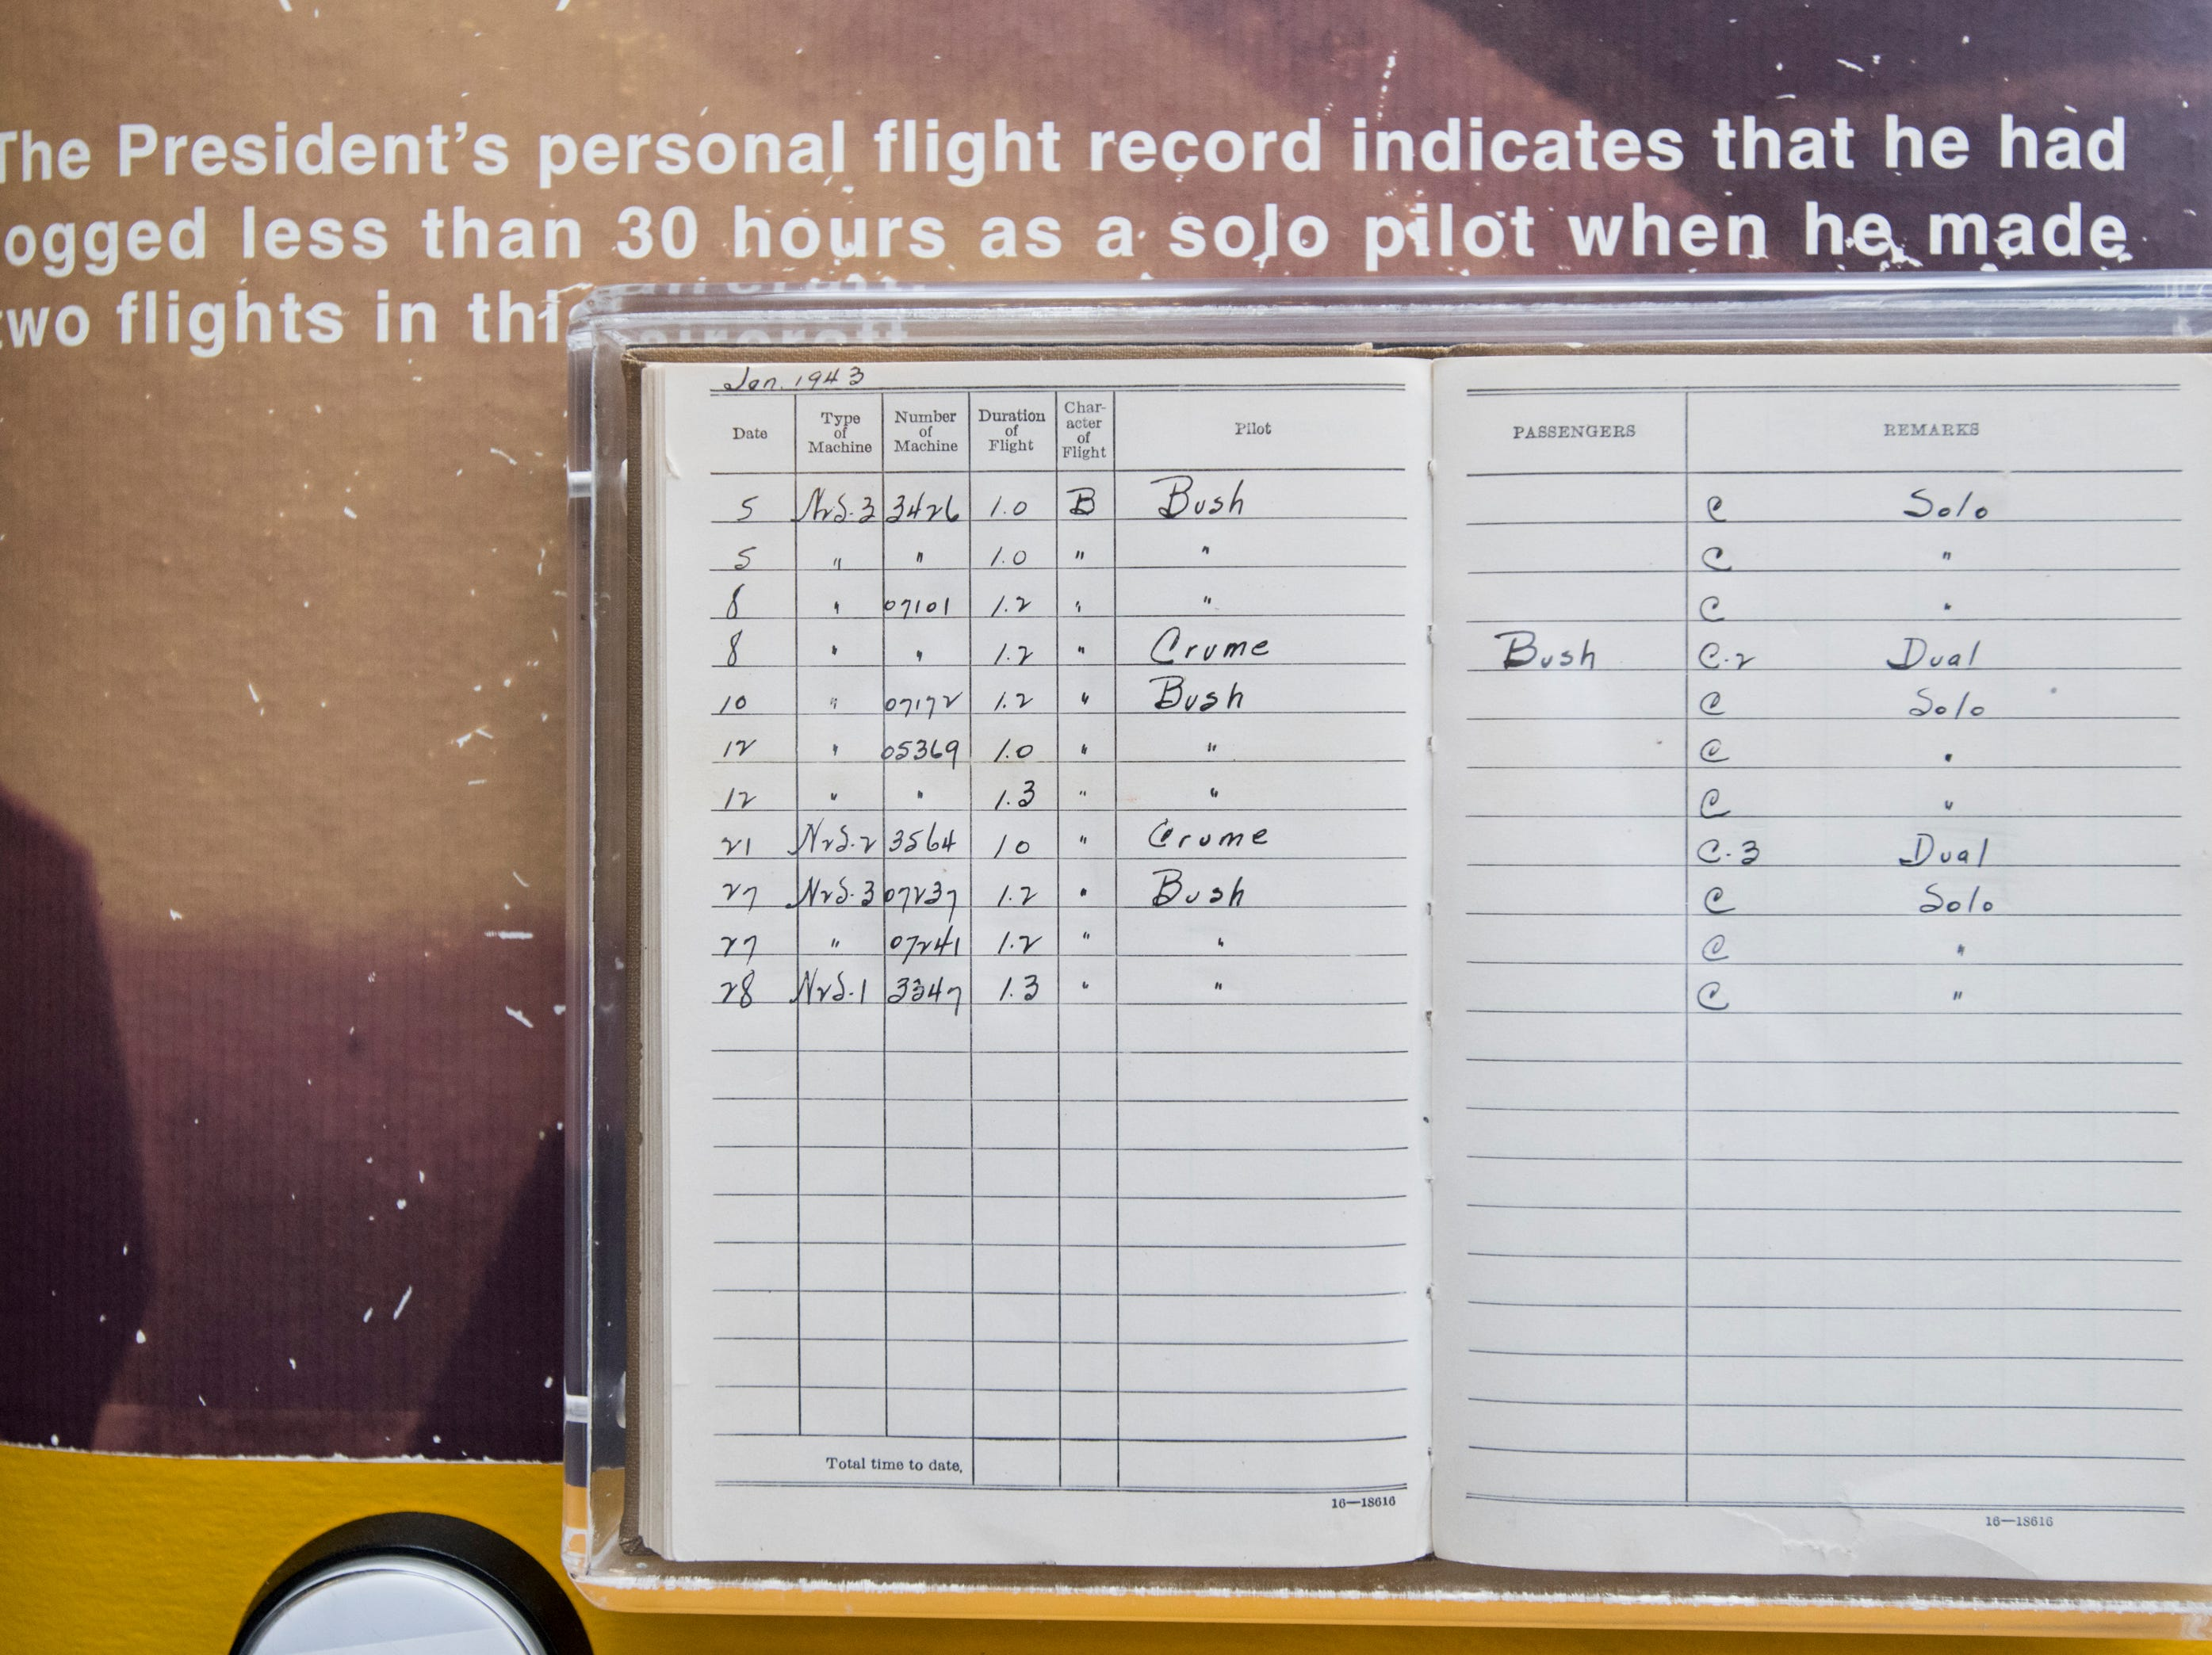 President George H.W. Bush's logbook is displayed near the Stearman biplane flown by him while training as a cadet during World War II at the National Naval Aviation Museum in Pensacola on Monday, December 3, 2018.